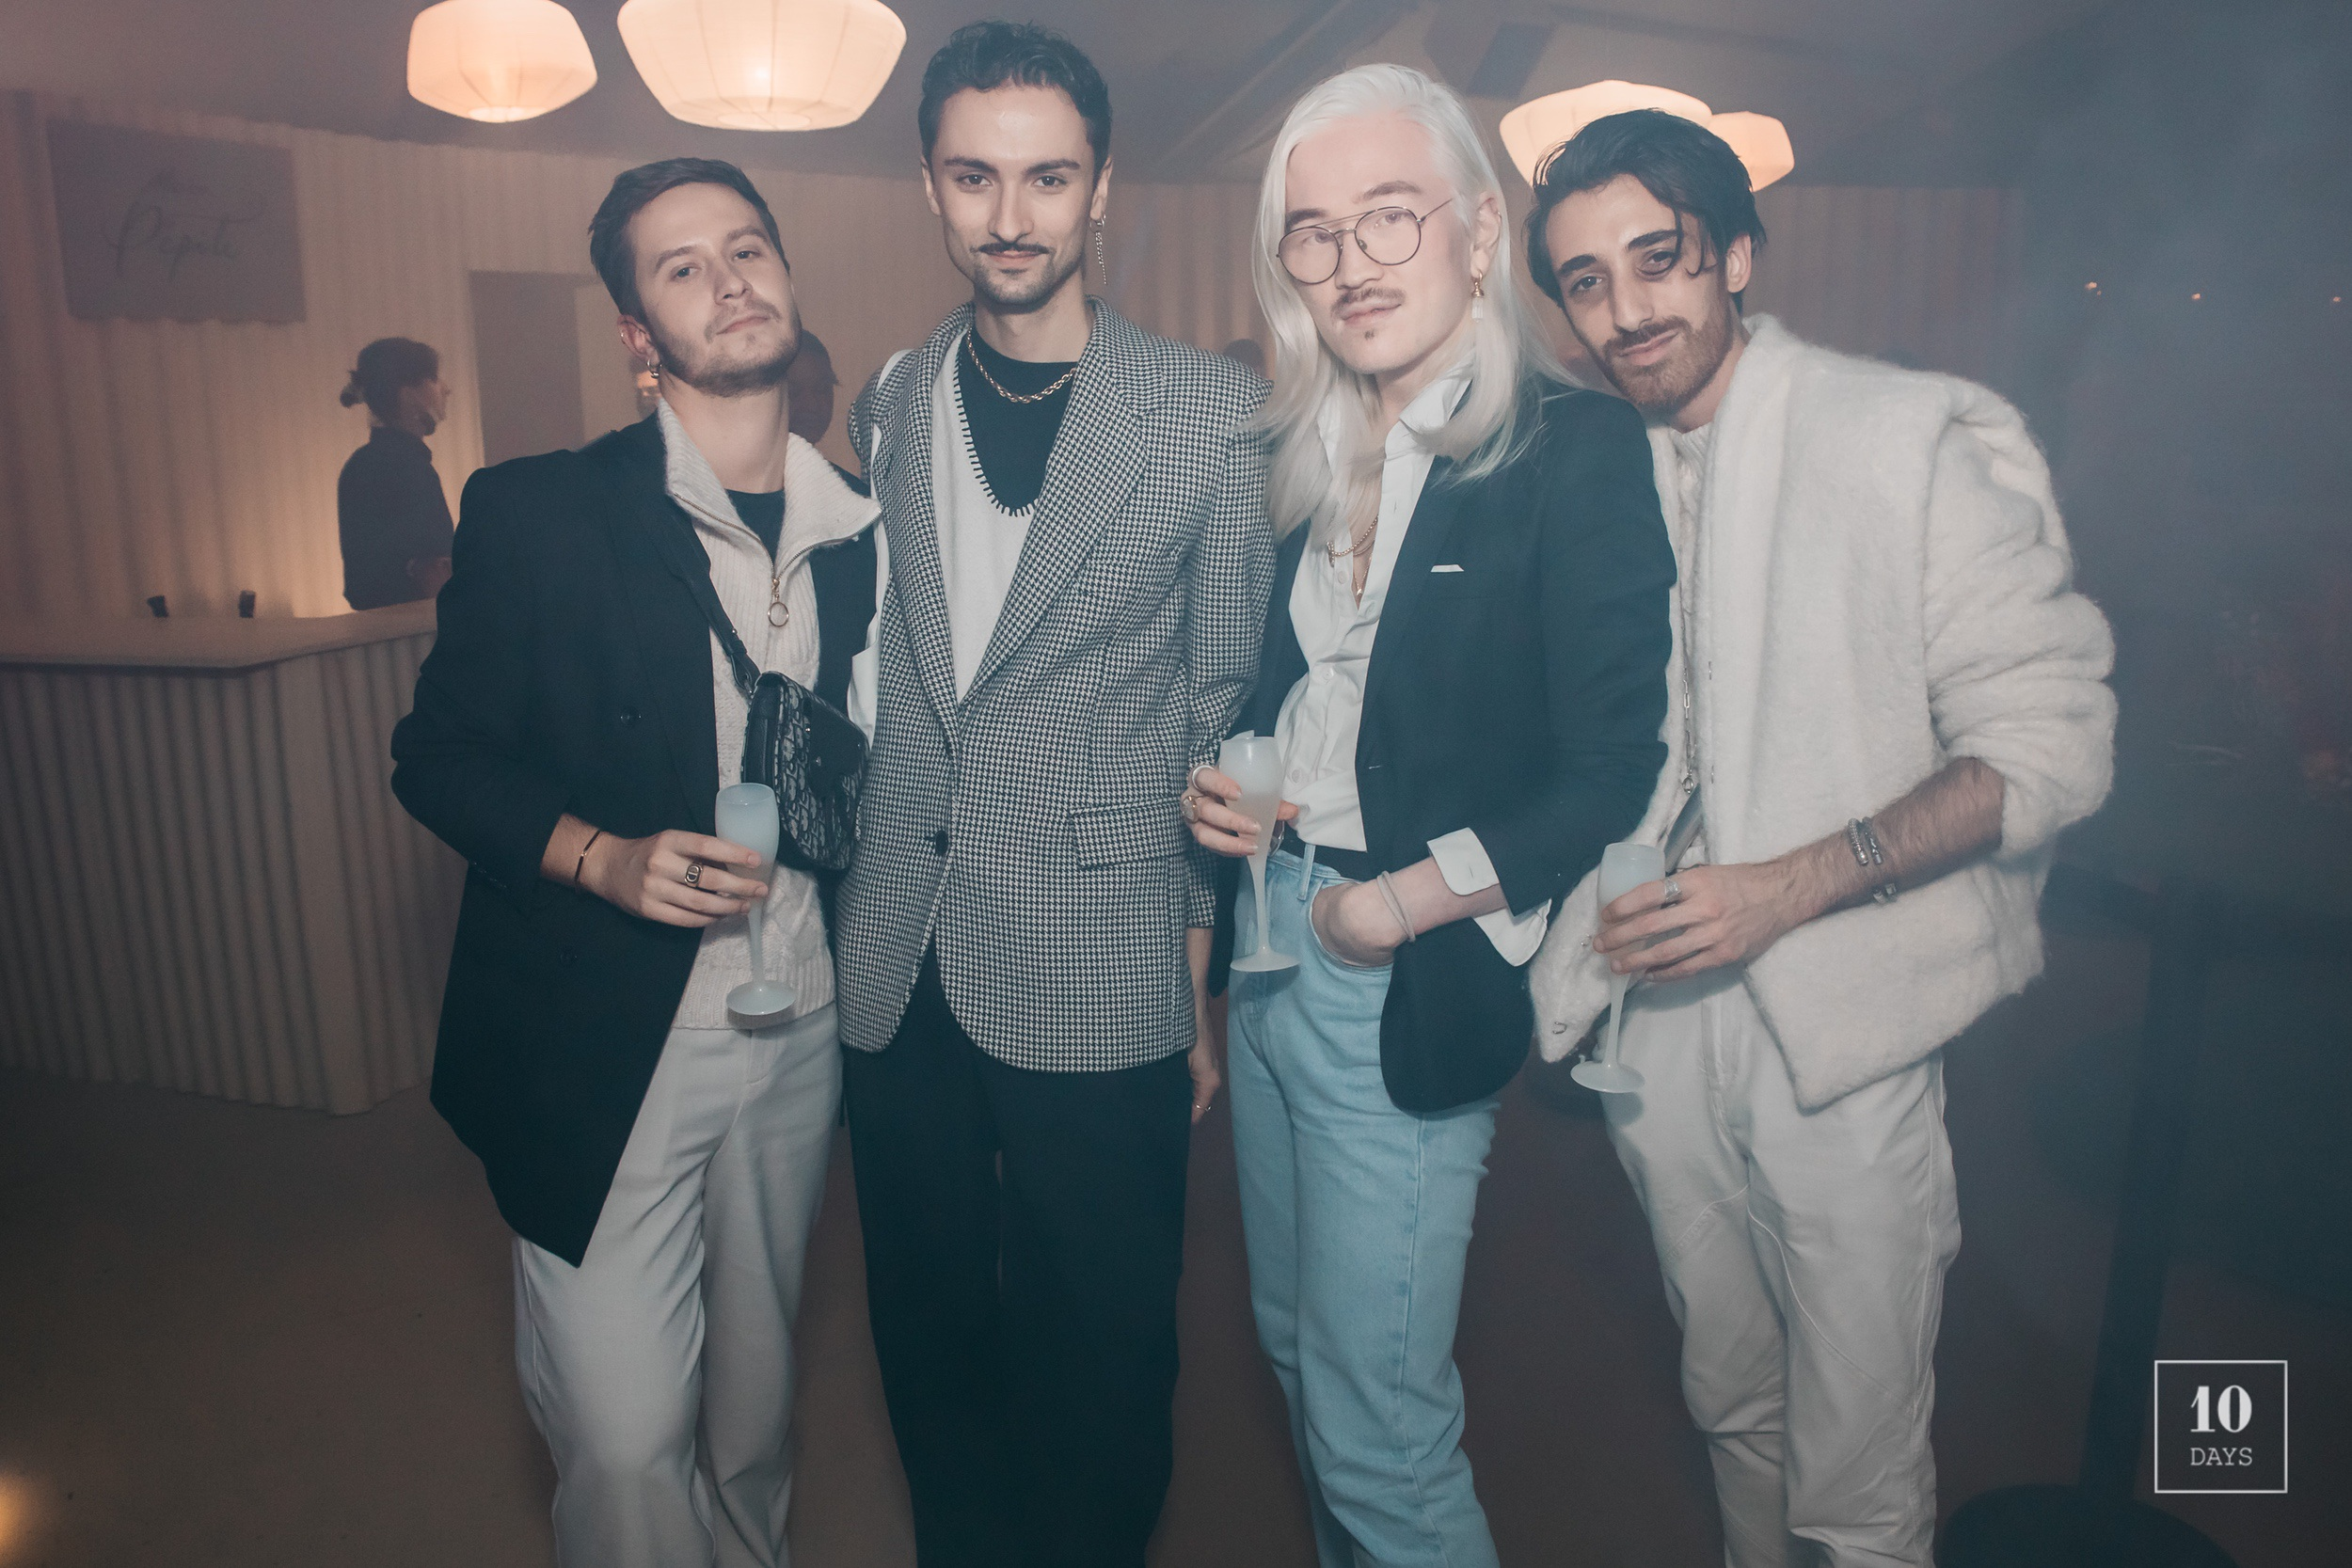 The Premiere Classe Closing Party: Celebrating fashion and creation